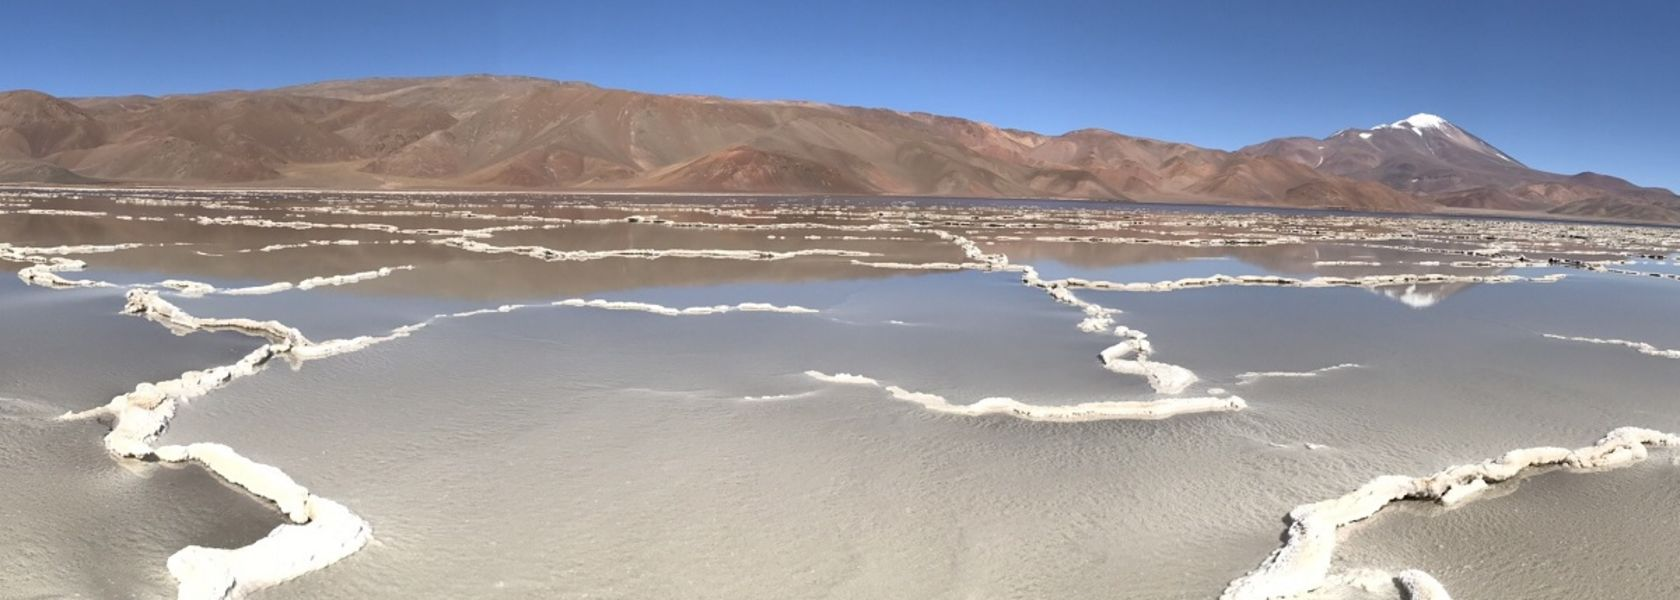 Neo Lithium takes the fast track to success